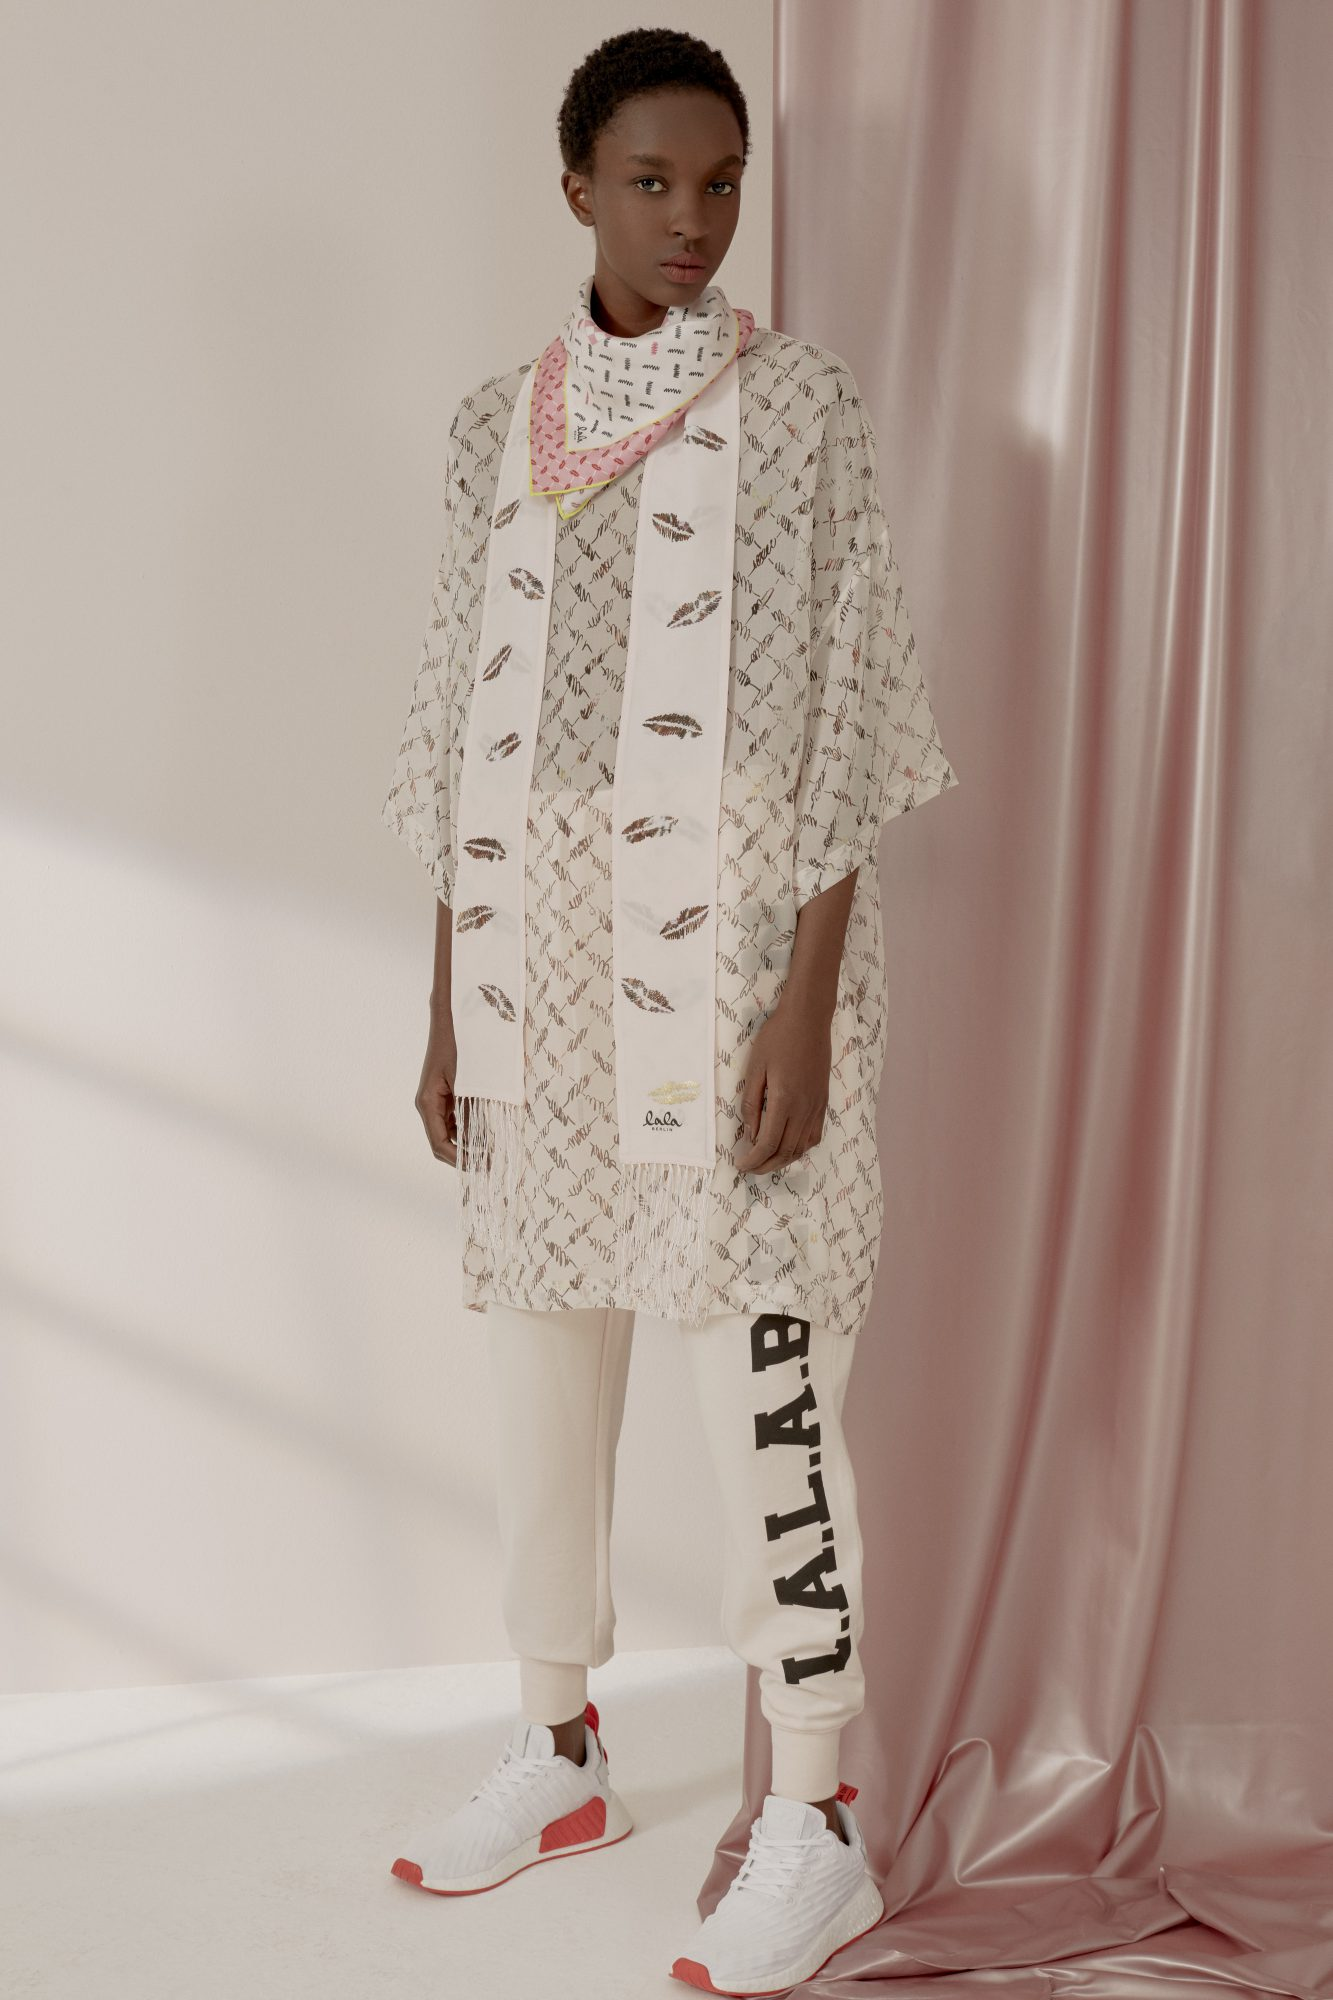 Lala_Berlin_Lookbook_Spring_Look_11_145_V1